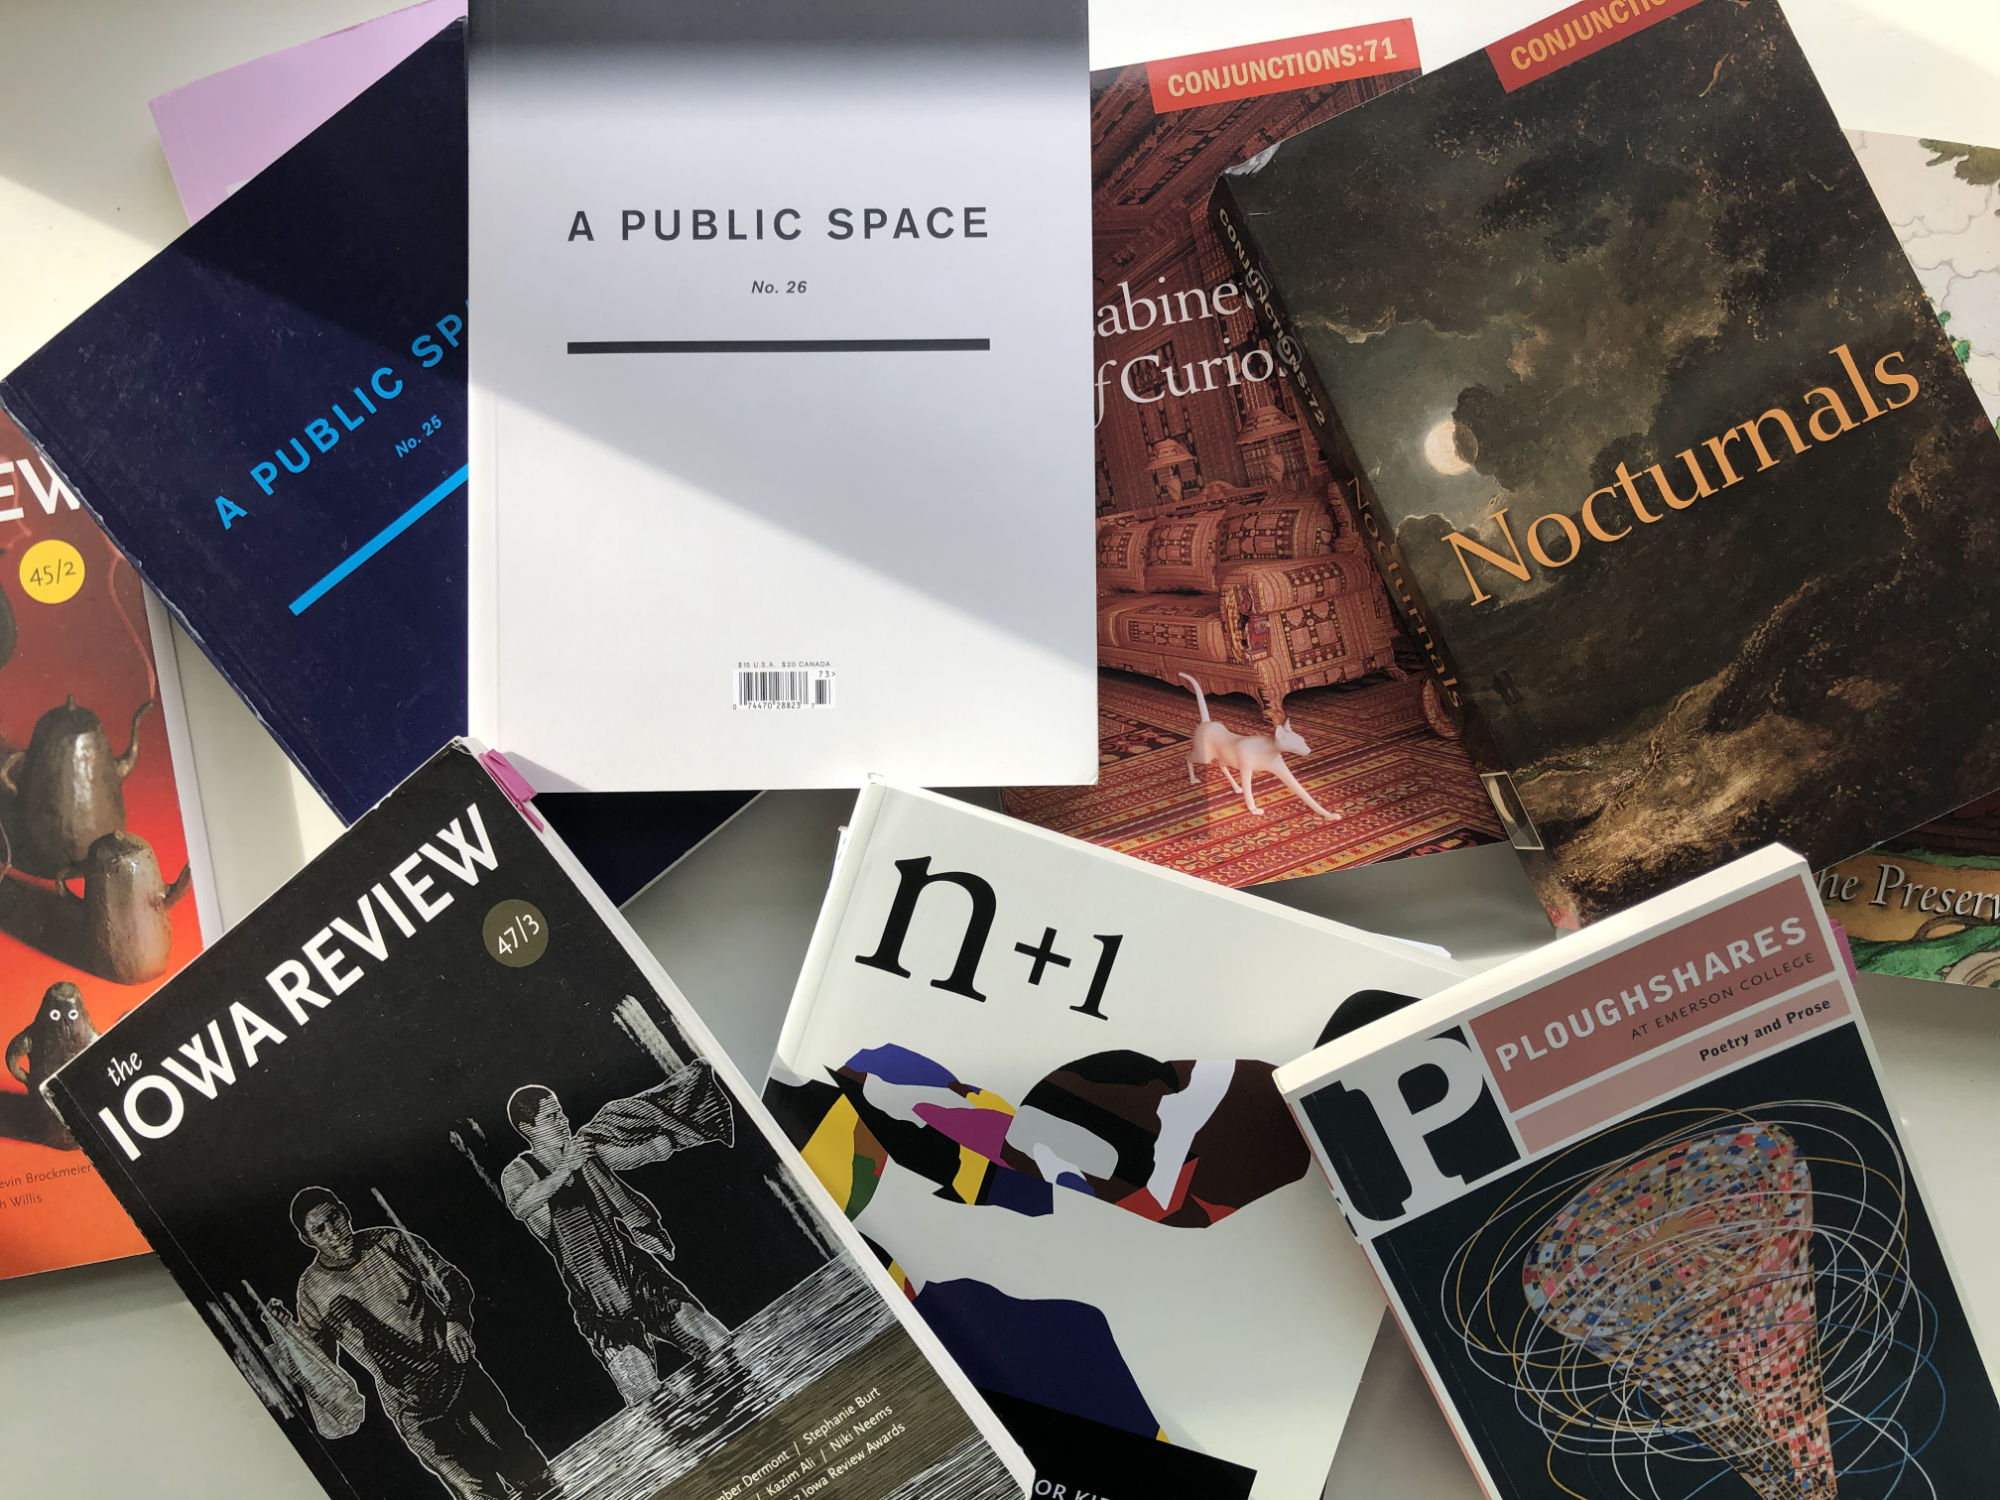 An image of some of my favorite literary journals